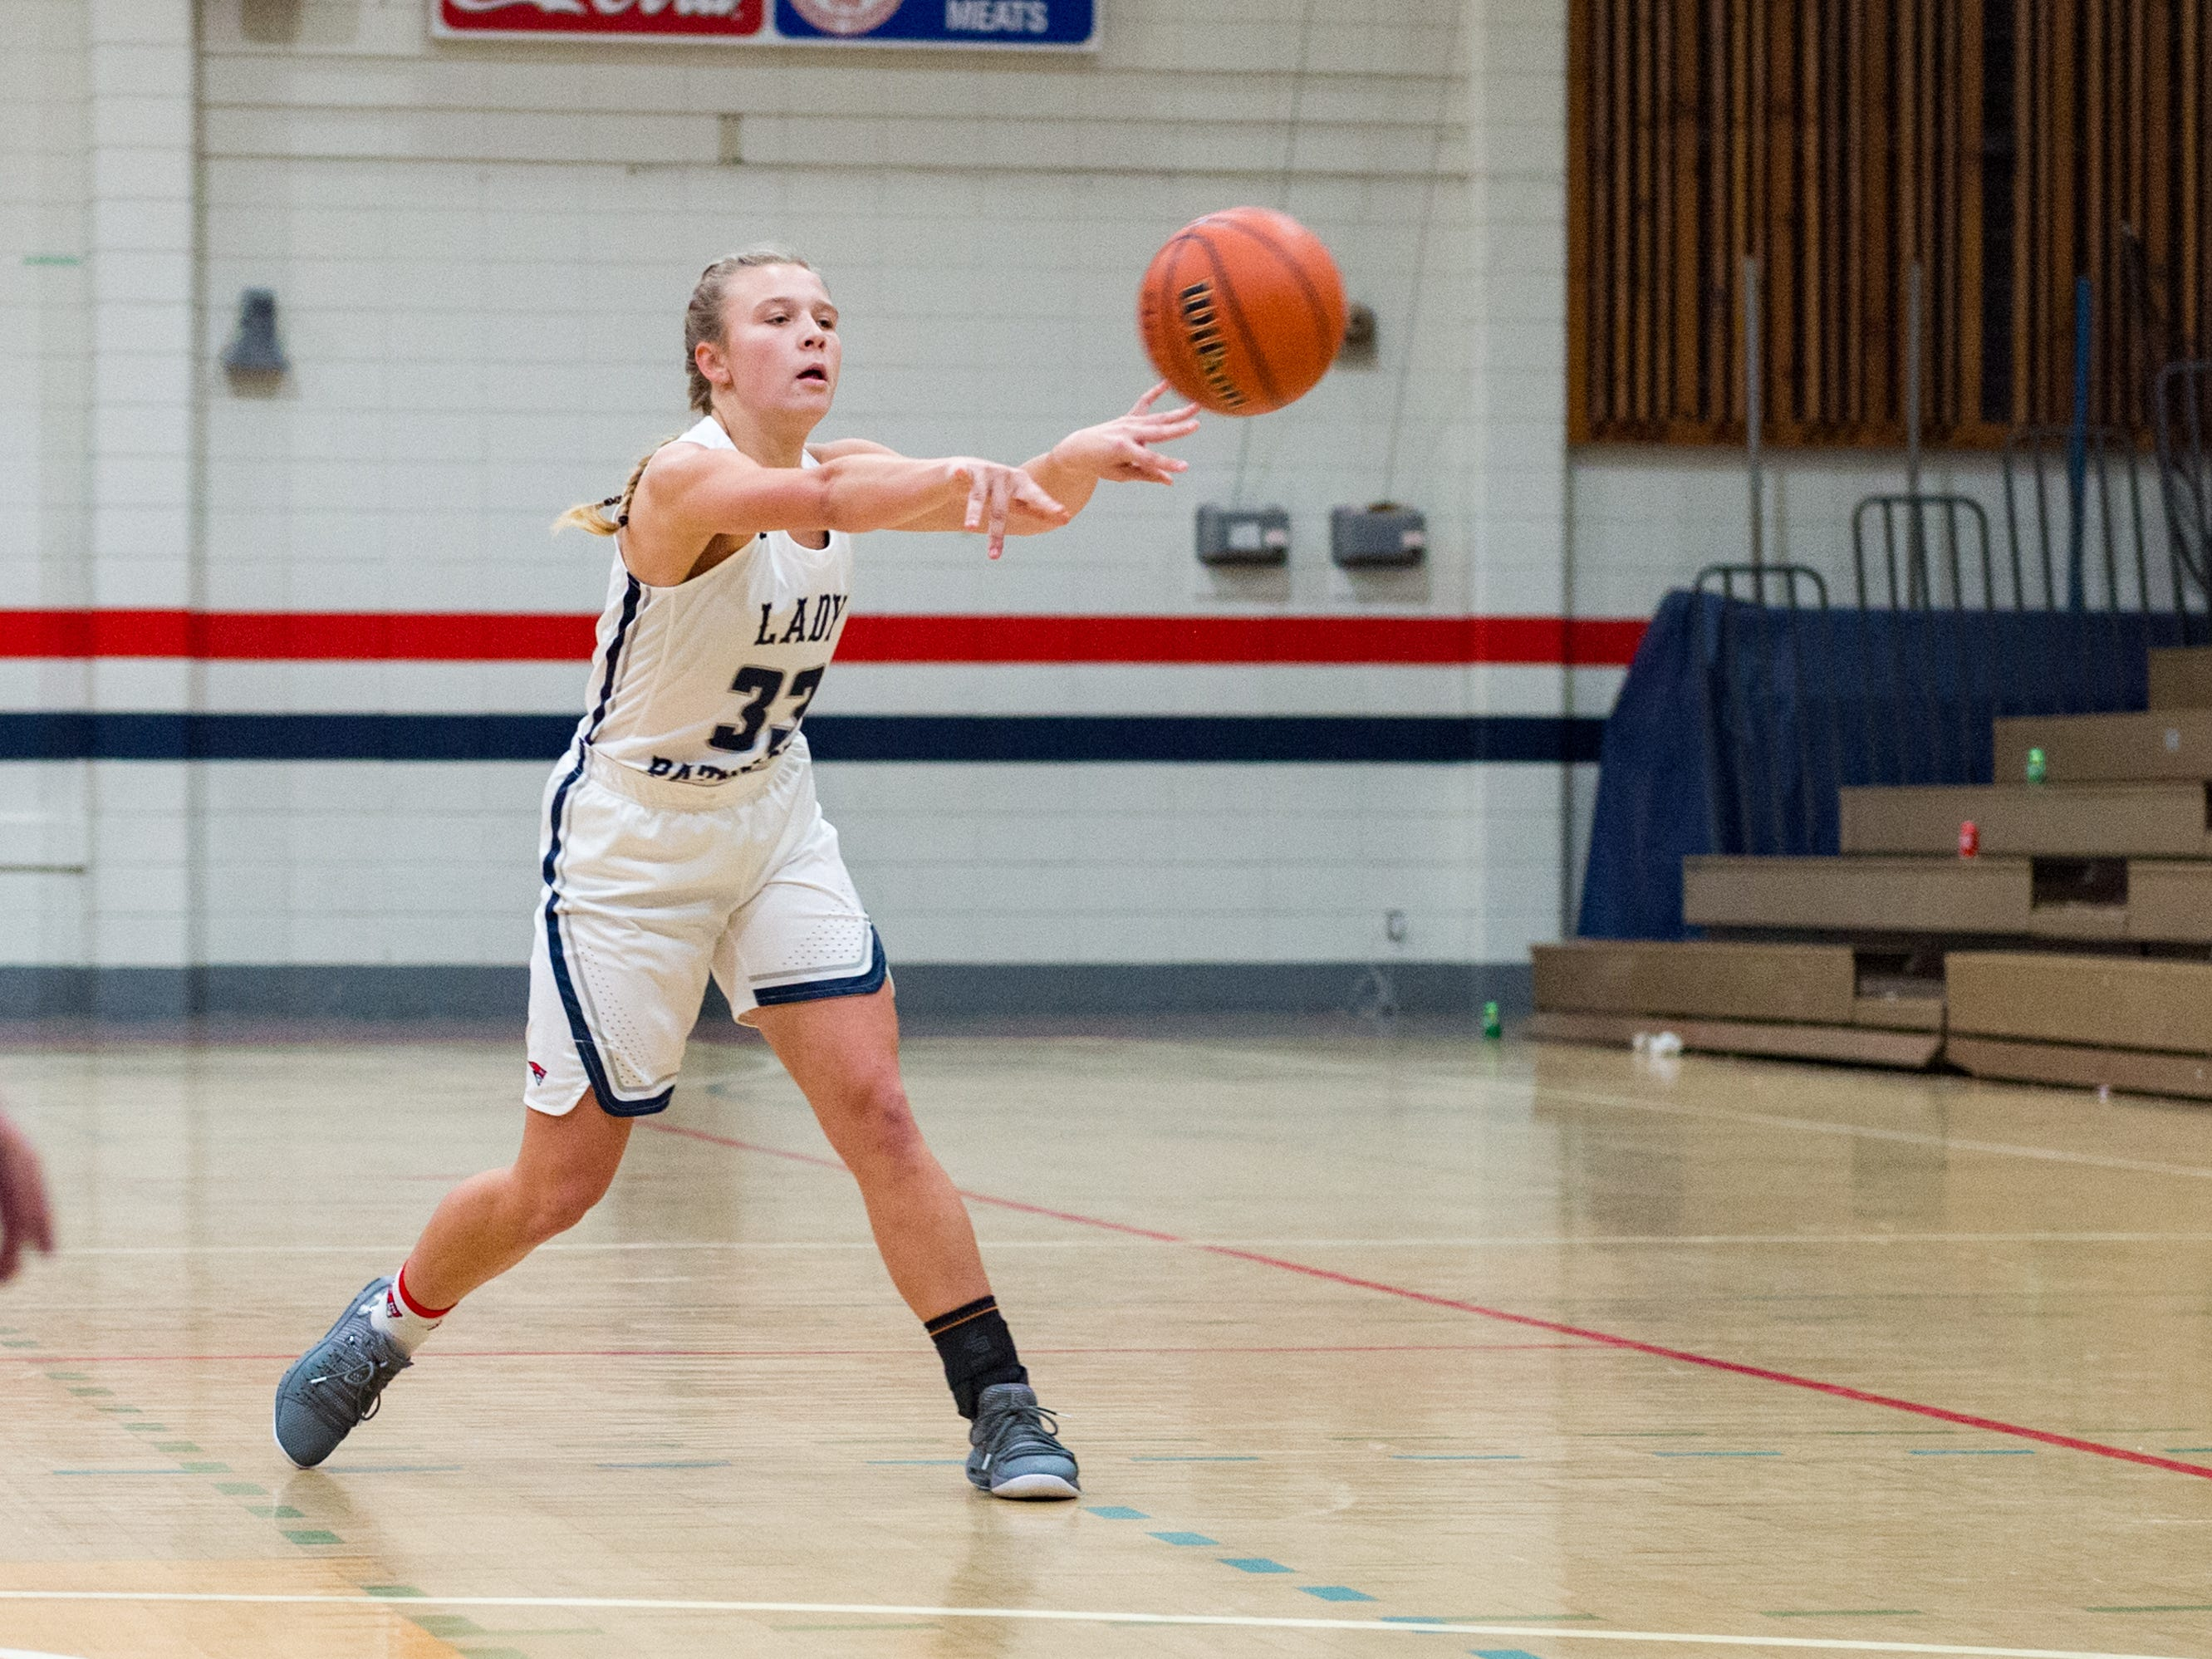 Katelyn Gunter passes the ball as Notre Dame and North Vermillion face off in Girls Basketball Tournament at North Vermillion High School. Tuesday, Nov. 20, 2018.